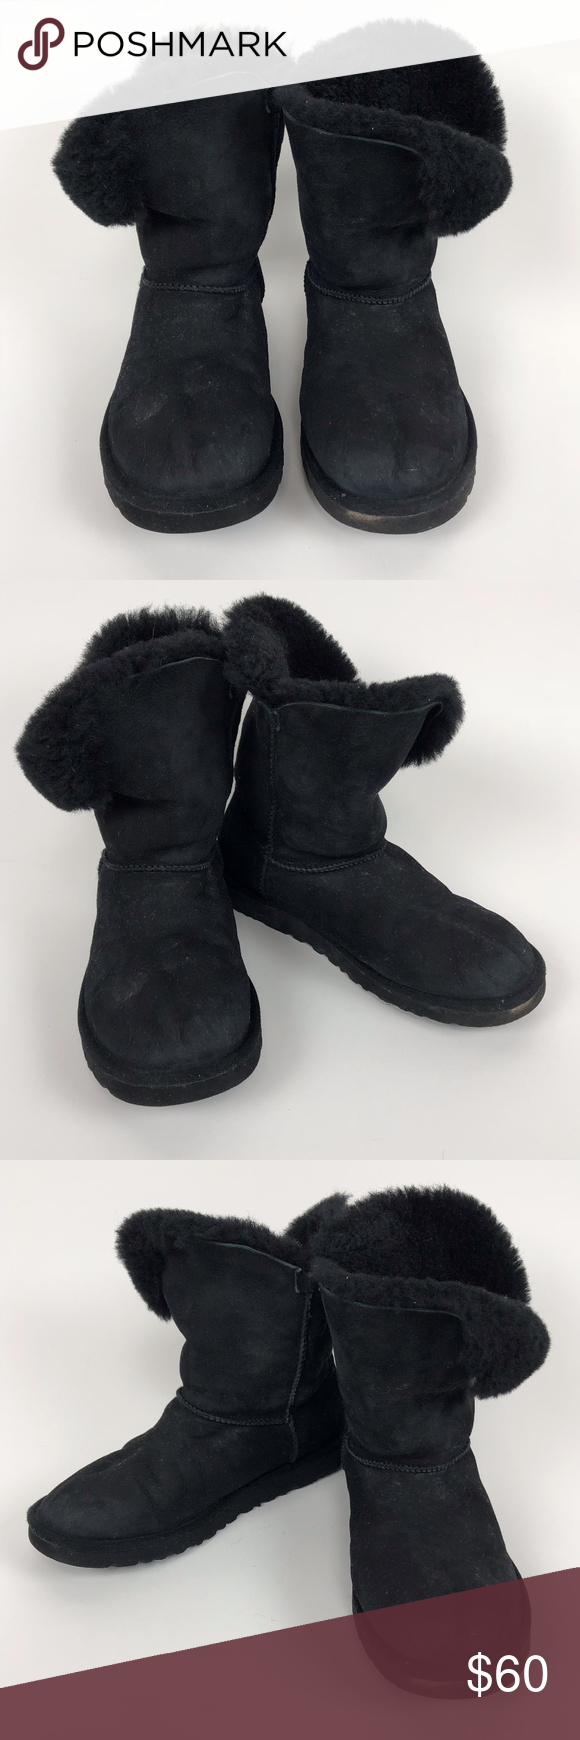 981c2fe4842 UGG Women s Black Bailey Button Boots Size 8 UGG Australia Bailey Button  Black Size 8 Pre-owned  Any signs of wear or defects are shown in images  PM22 UGG ...